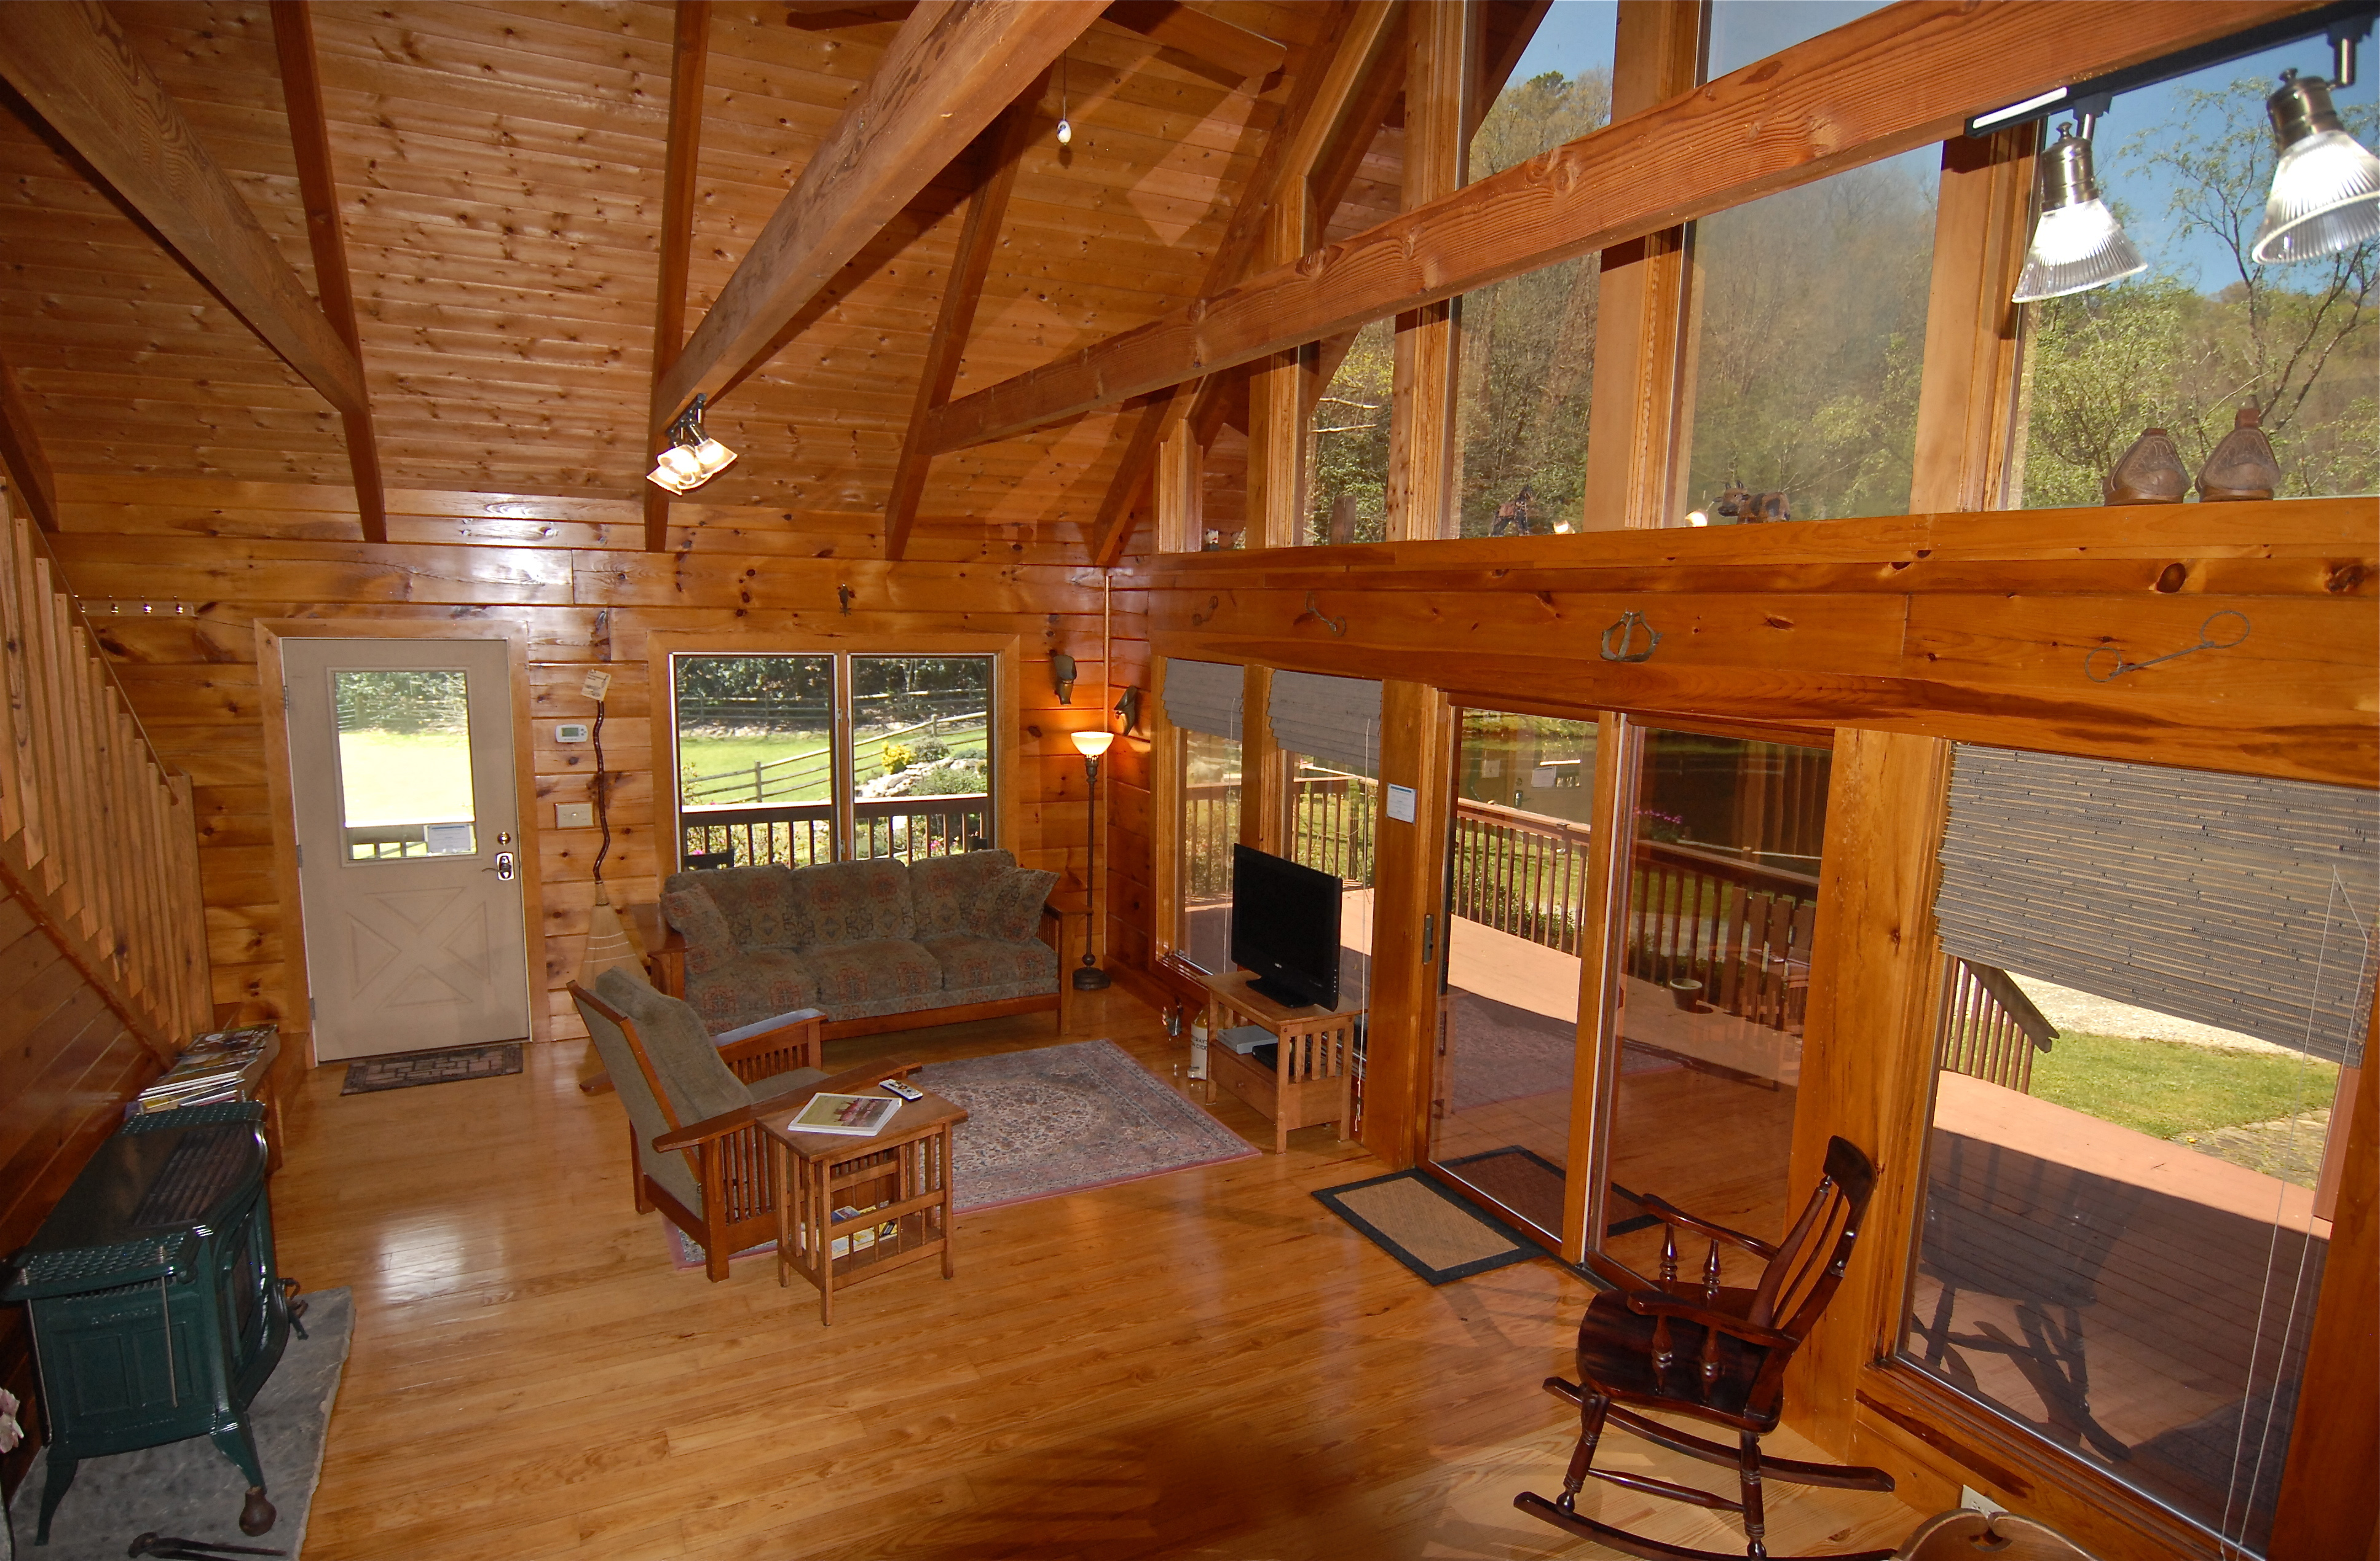 pin eco asheville friendly nc cabins for rentals elevated near tree cabin experience rental house